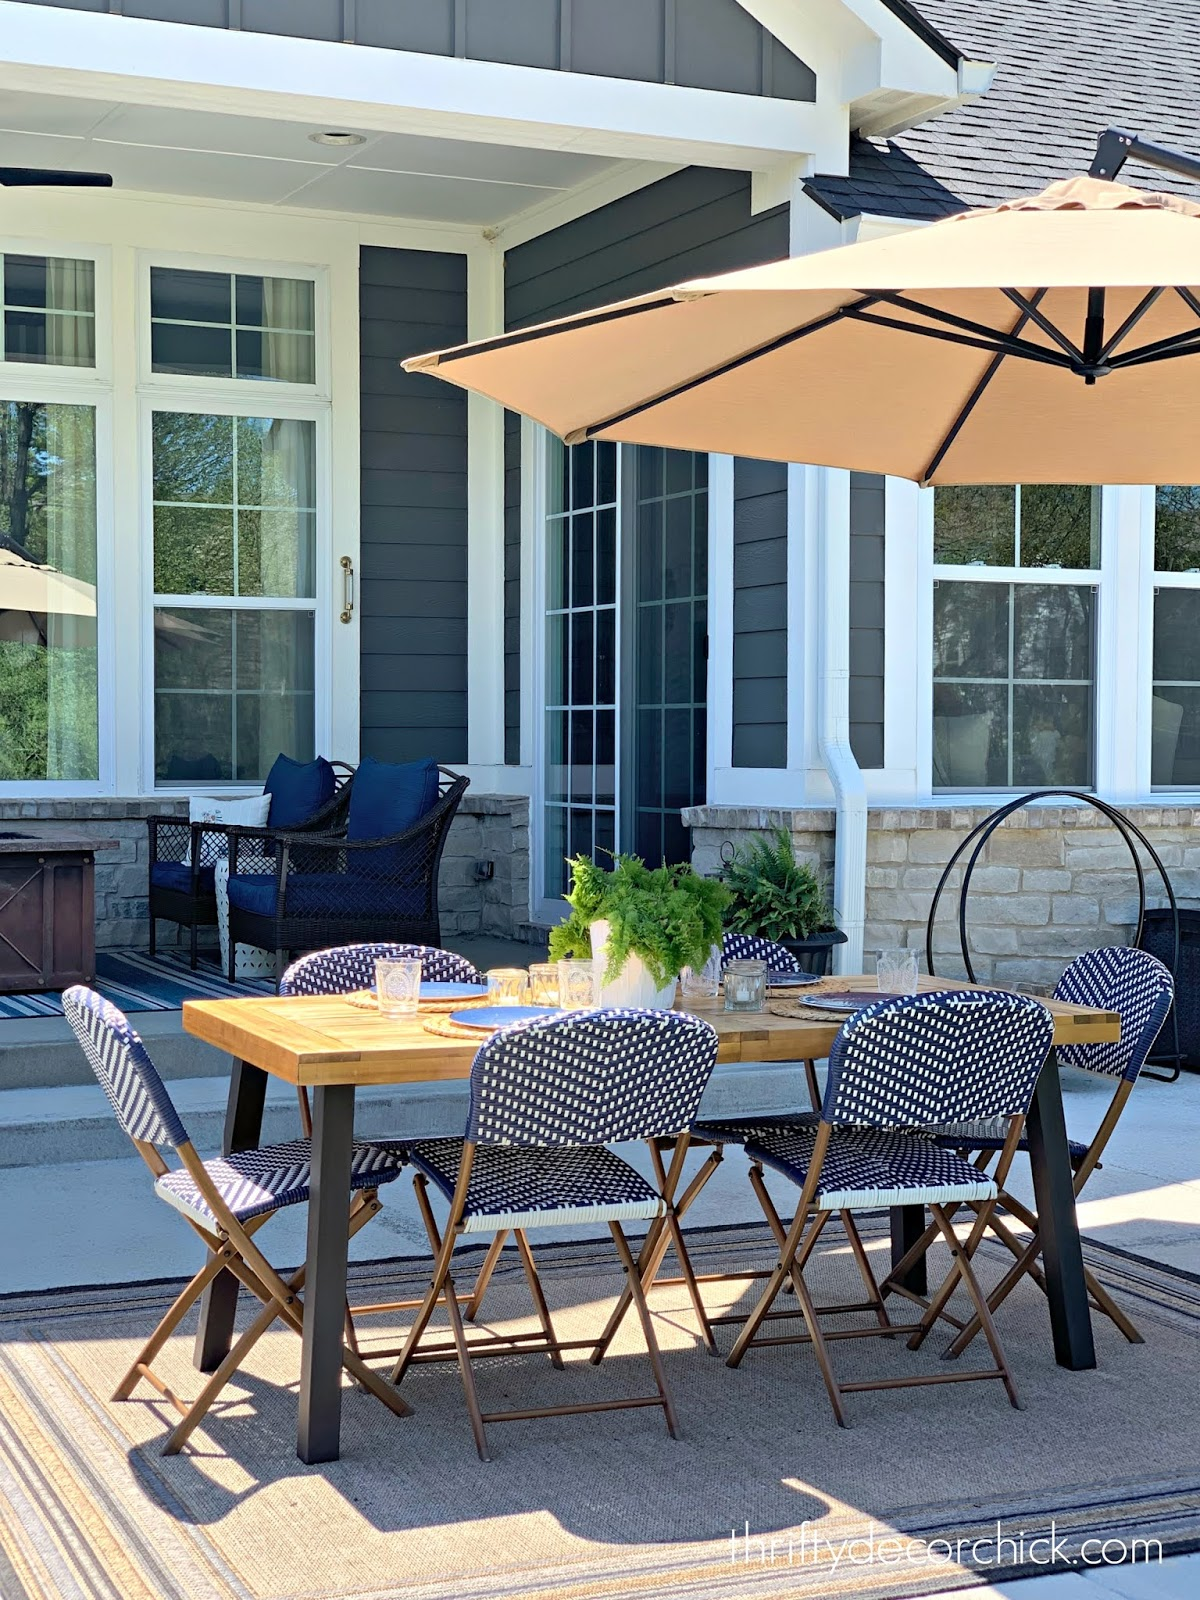 How to refinish a worn outdoor table